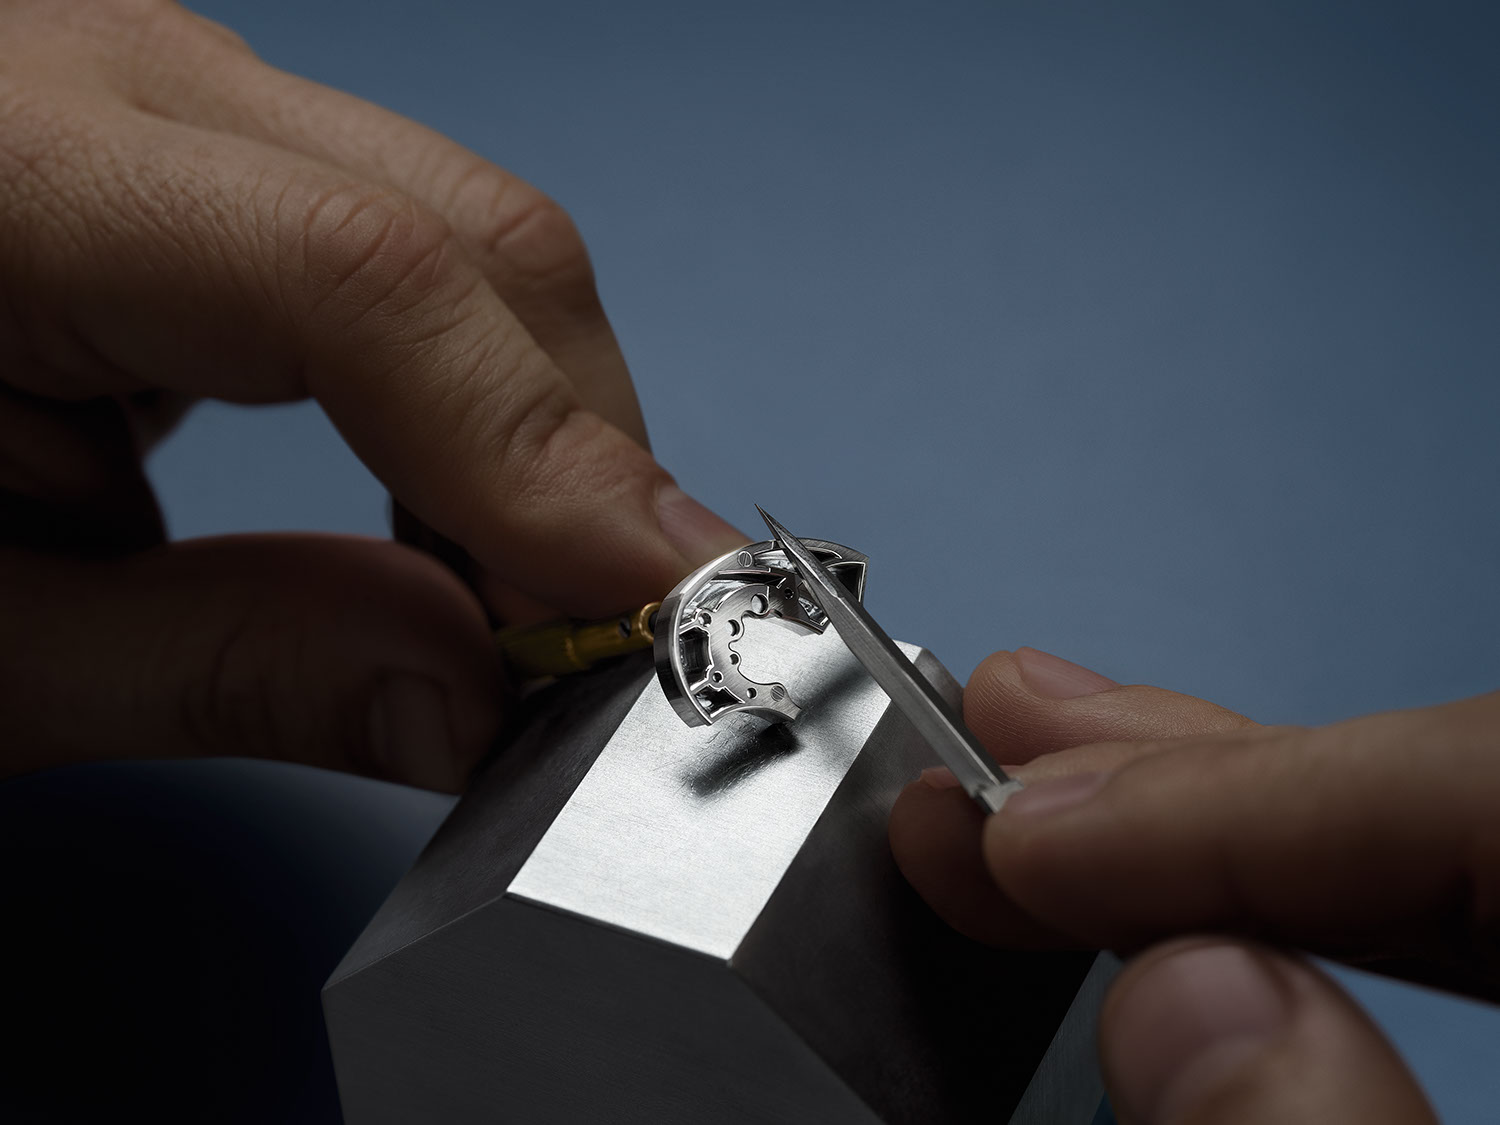 Extensive finissage is required for the Code 11.59 by Audemars Piguet Selfwinding Flying Tourbillon Chronograph to adequately dress its complicated bridges with multiple internal angles